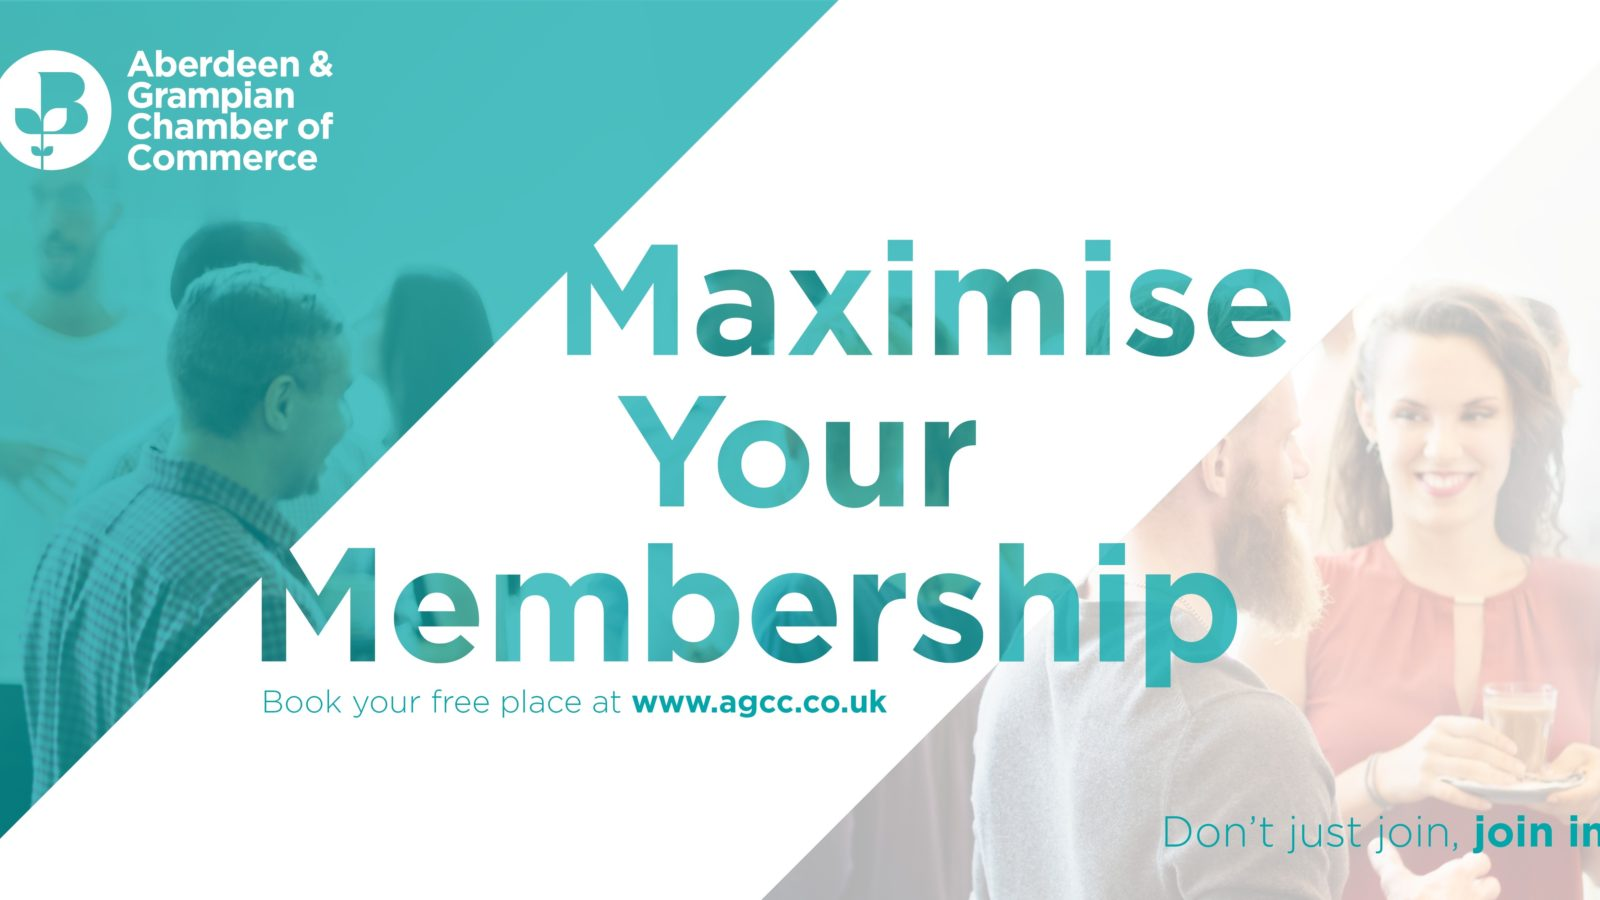 Maximise your Membership: Free event for those wanting to refresh their knowledge or find out more about joining the Chamber